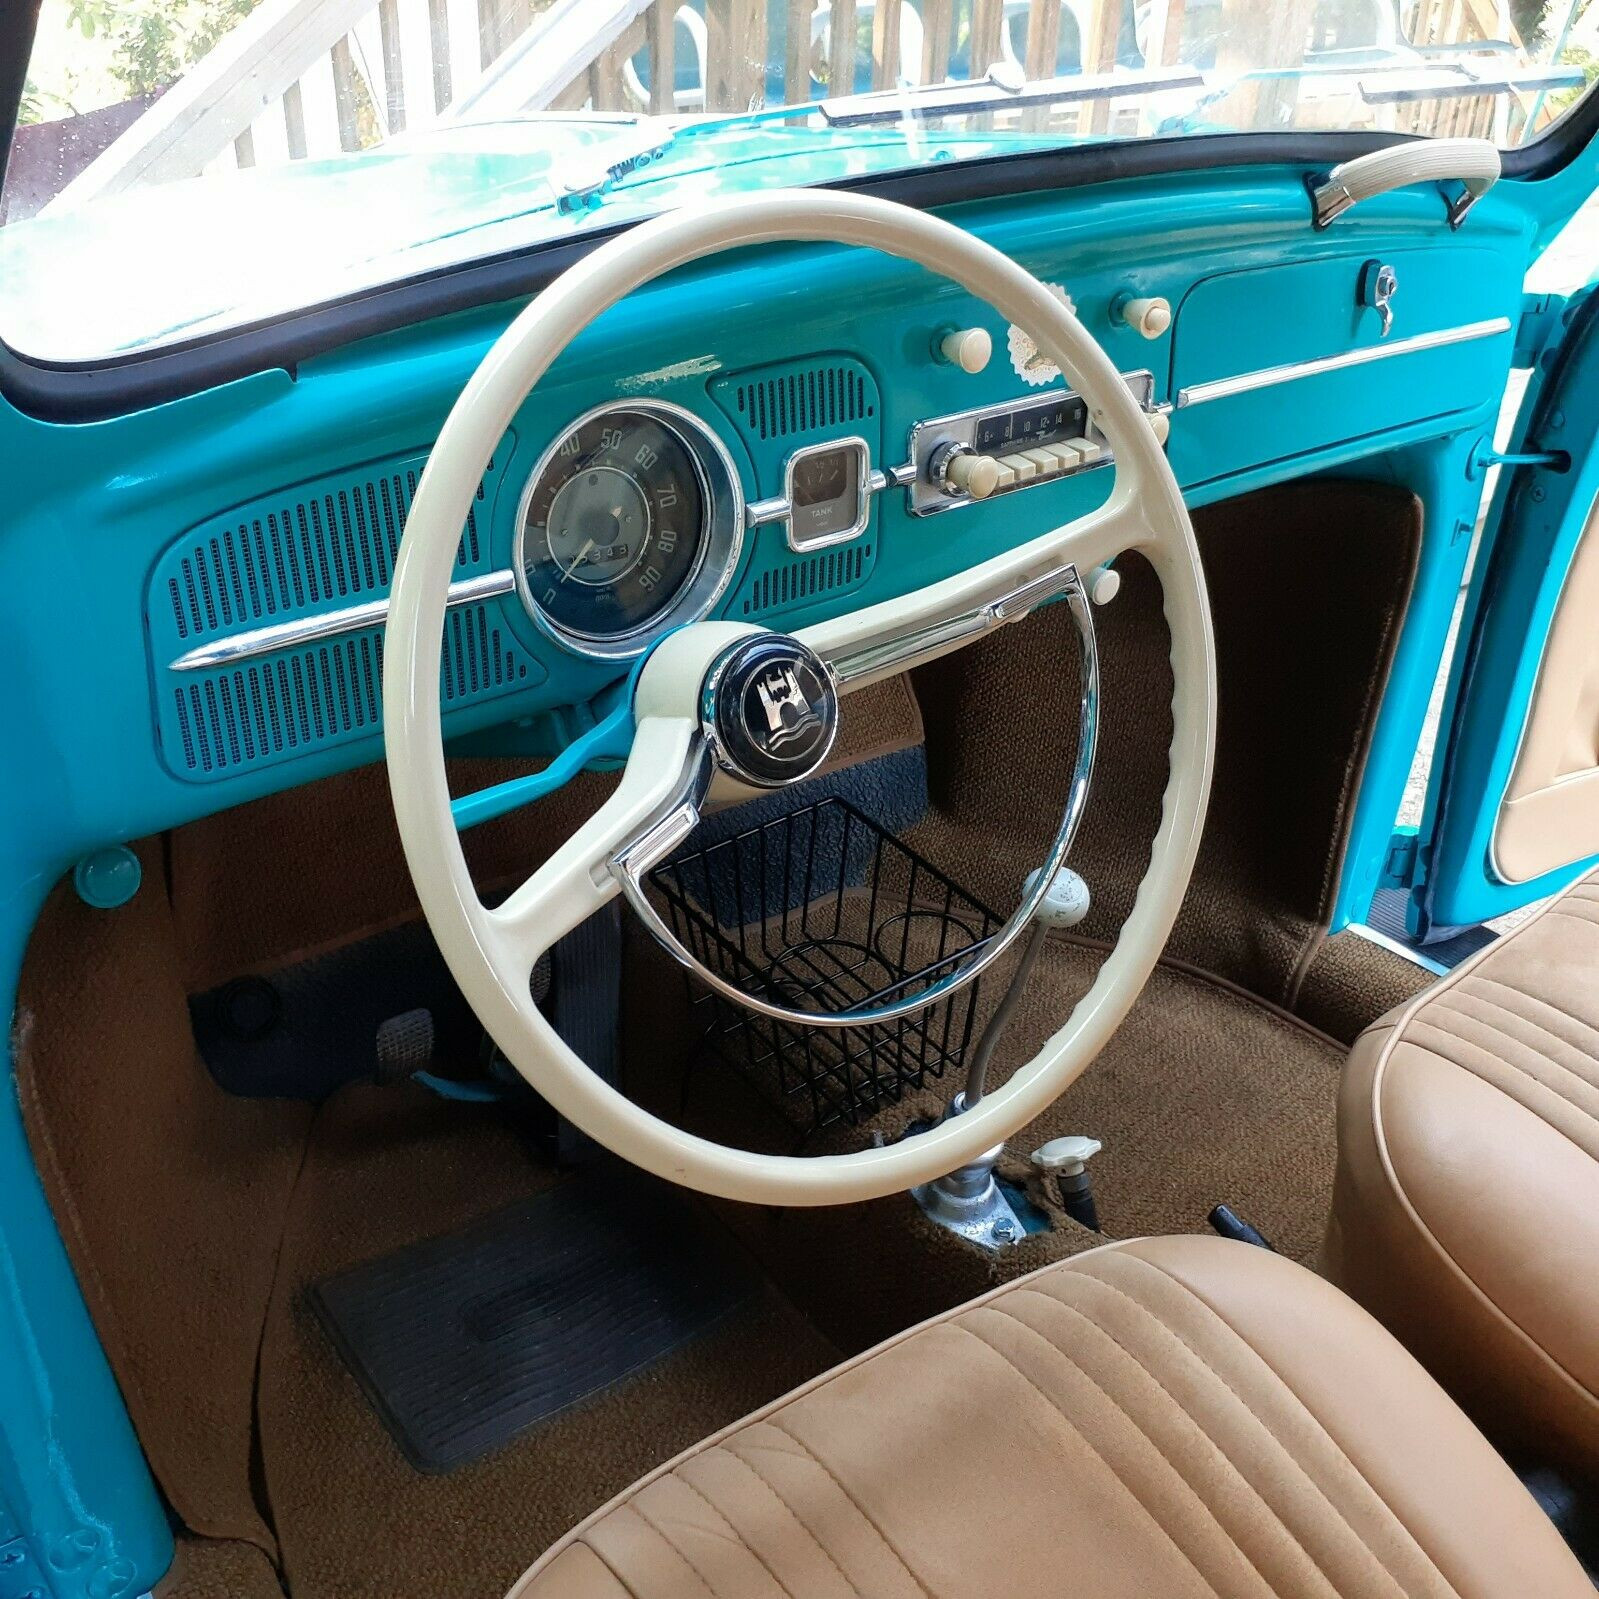 1962 Volkswagen Beetle sedan interior